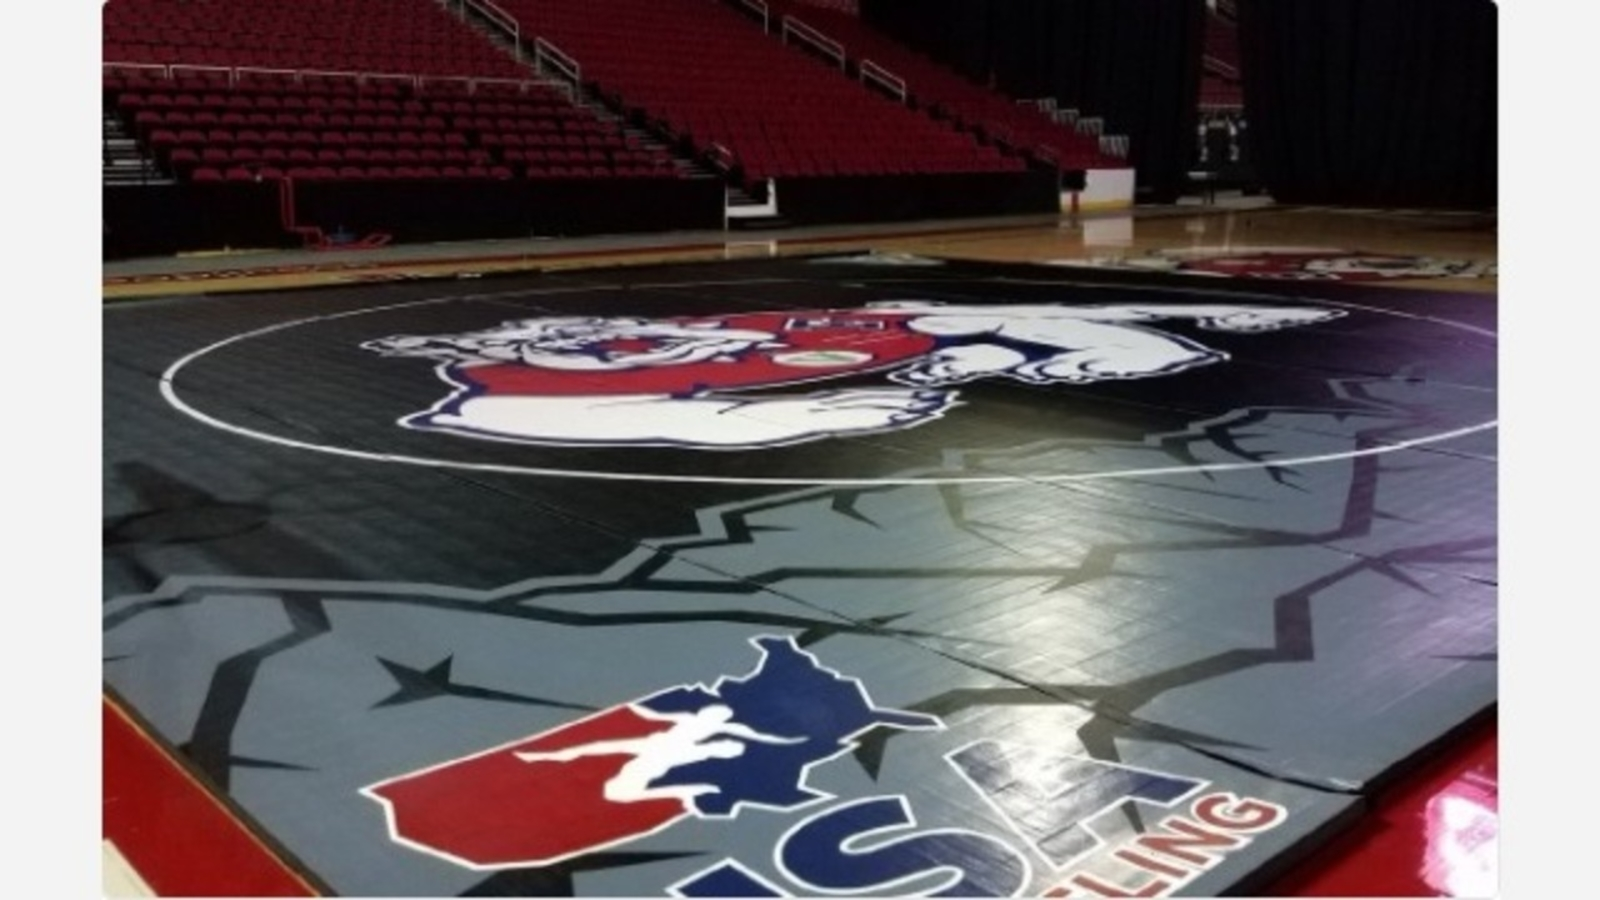 Fresno State Wrestling mat revealed for first time | abc30 com